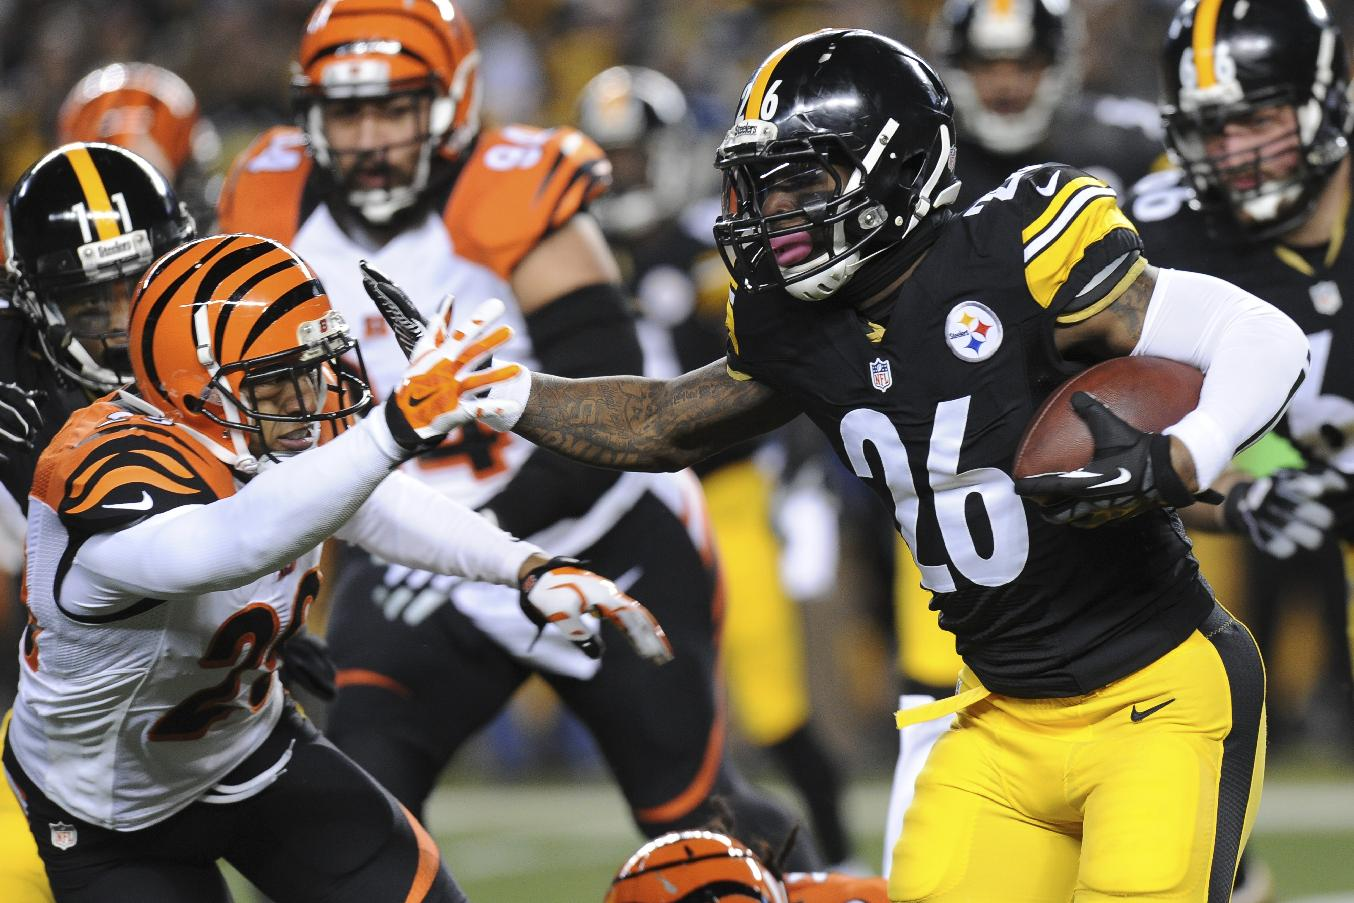 Pittsburgh Steelers running back Le'Veon Bell (26) runs into Cincinnati Bengals cornerback Leon Hall (29) during the first half an NFL football game Sunday, Dec. 28, 2014, in Pittsburgh. (AP Photo/Don Wright)